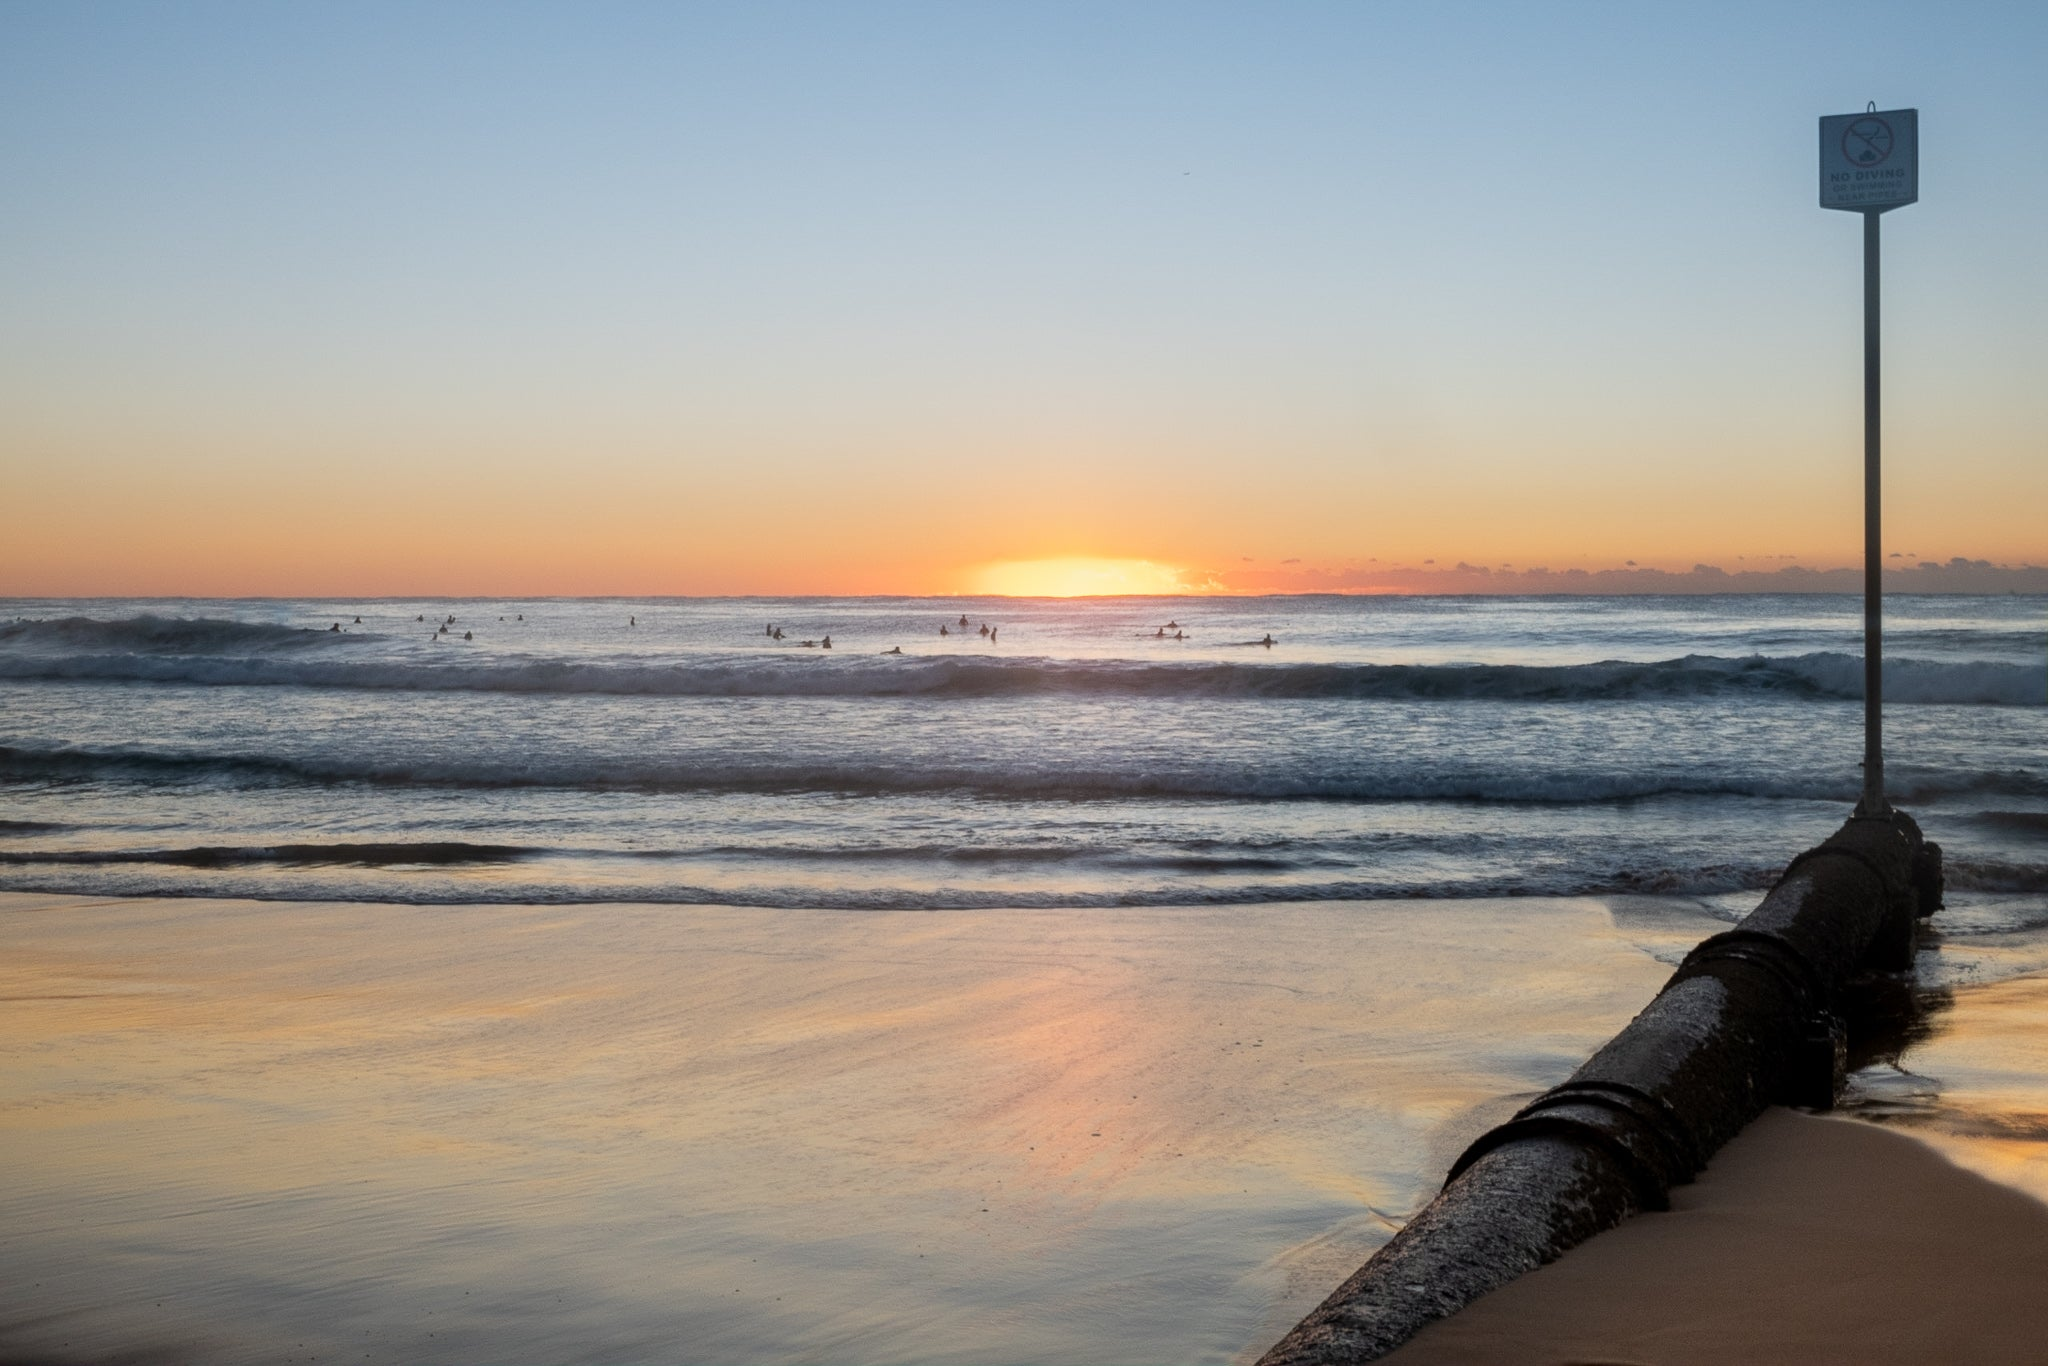 Sunrise photo from the 7th May 2019 at Manly beach in Sydney